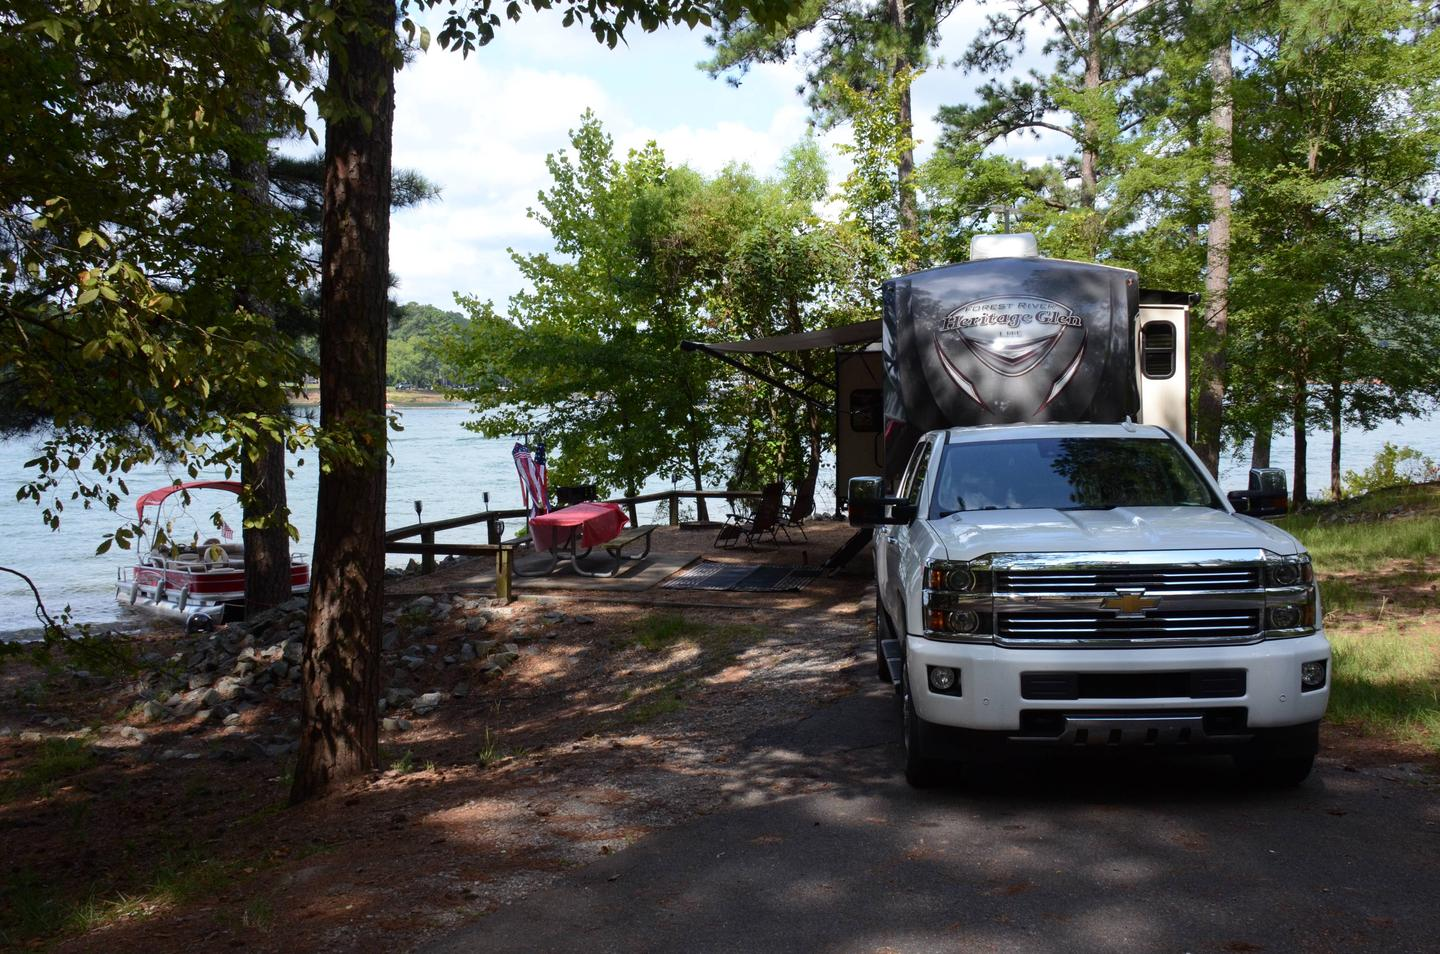 Awning-side clearance, campsite view.McKinney Campground, campsite 36.